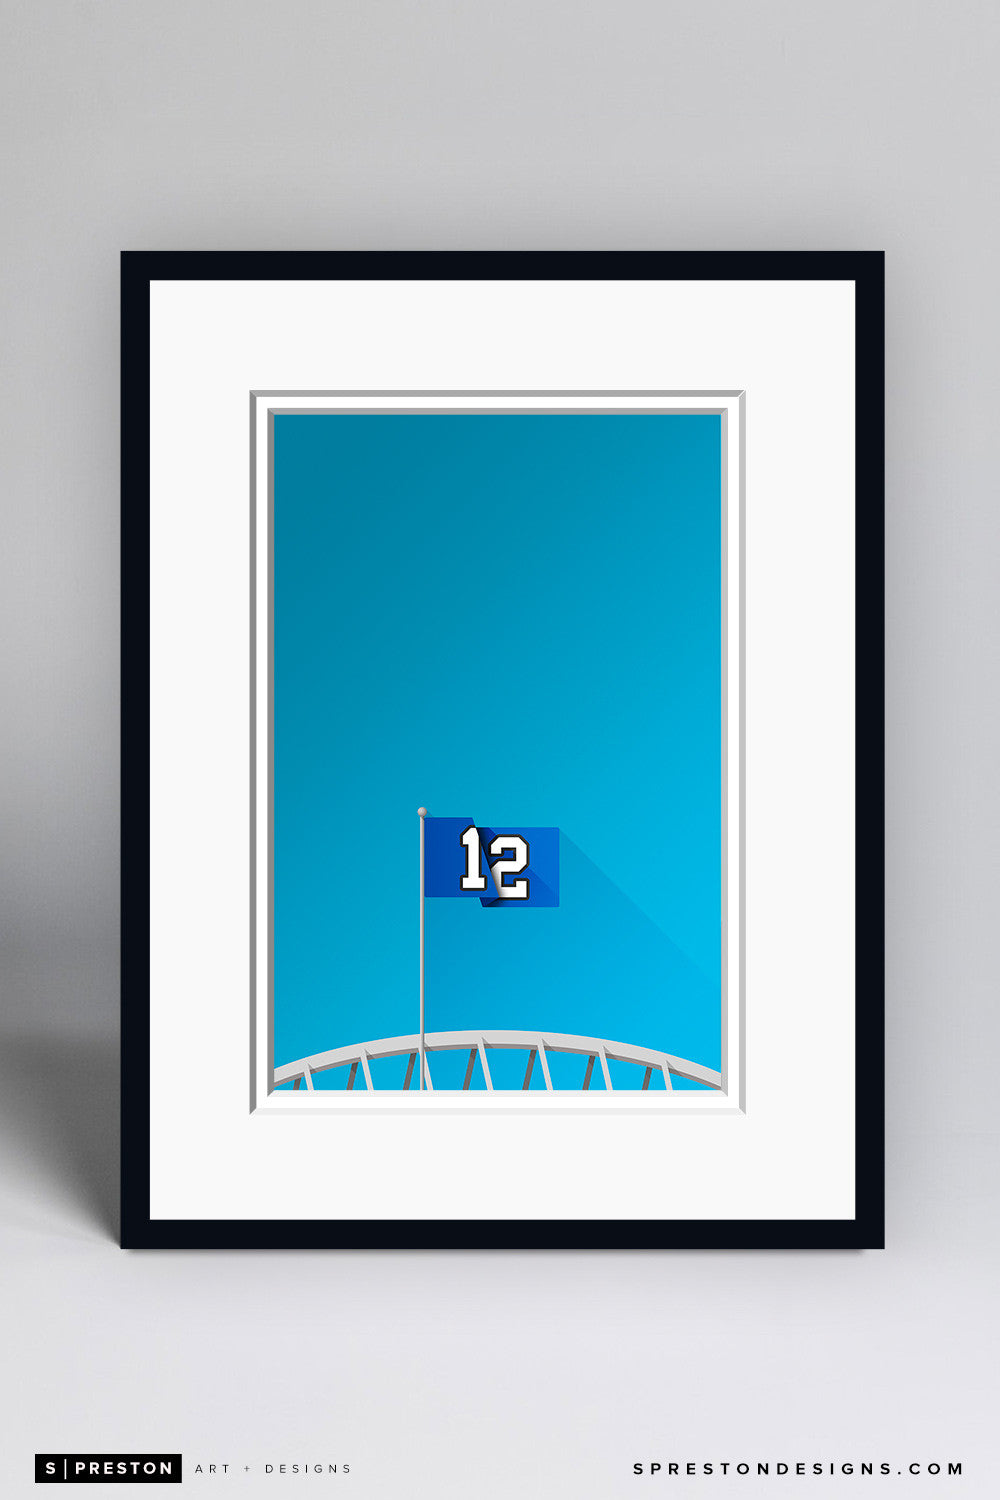 Minimalist CenturyLink Field Art Print - Seattle Seahawks - S. Preston Art + Designs